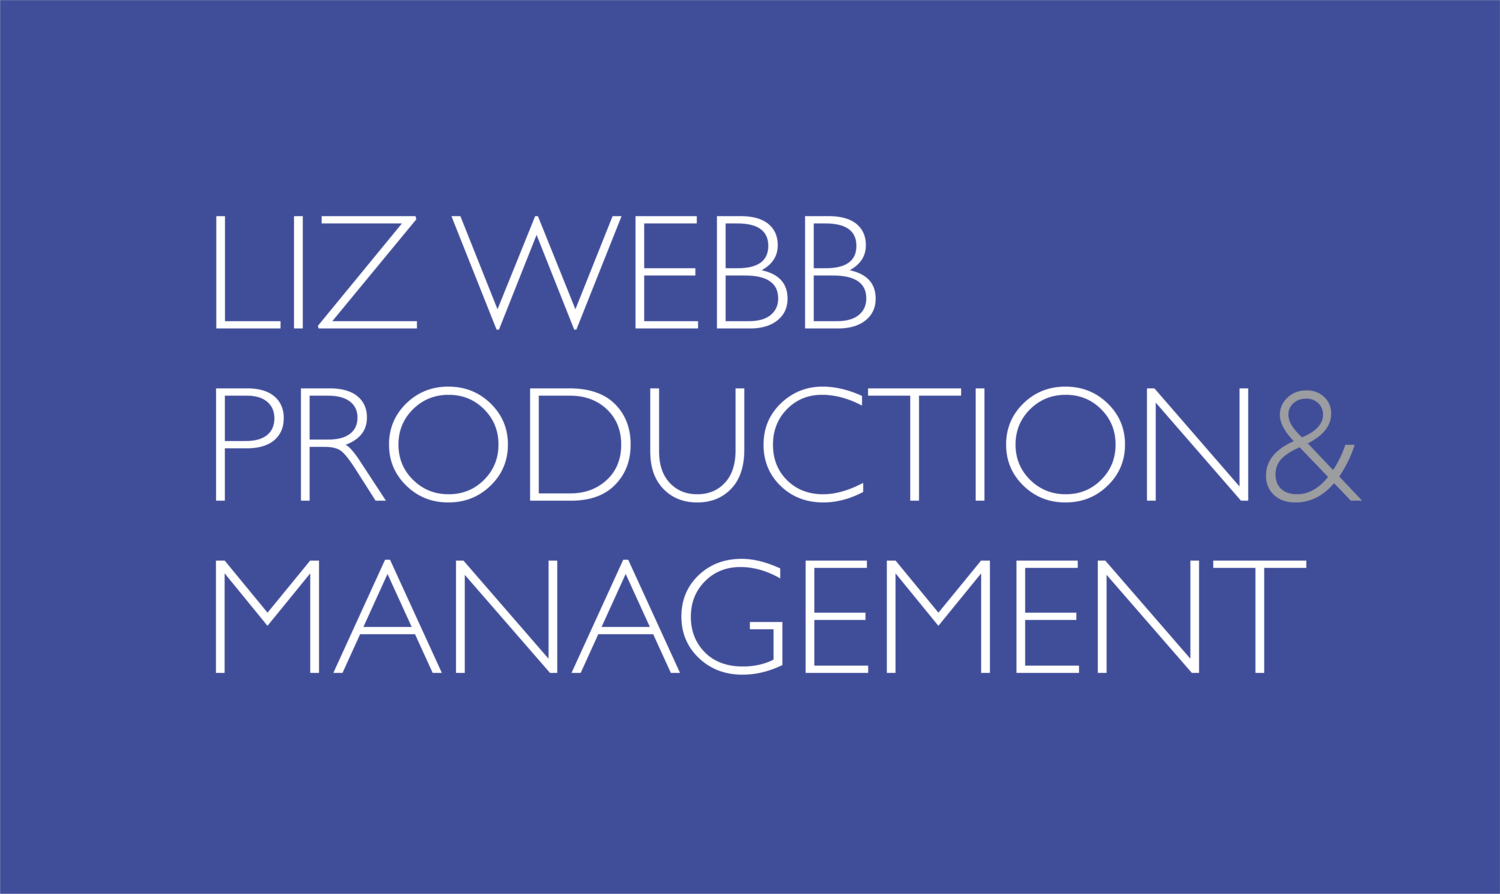 Liz Webb Production and Management